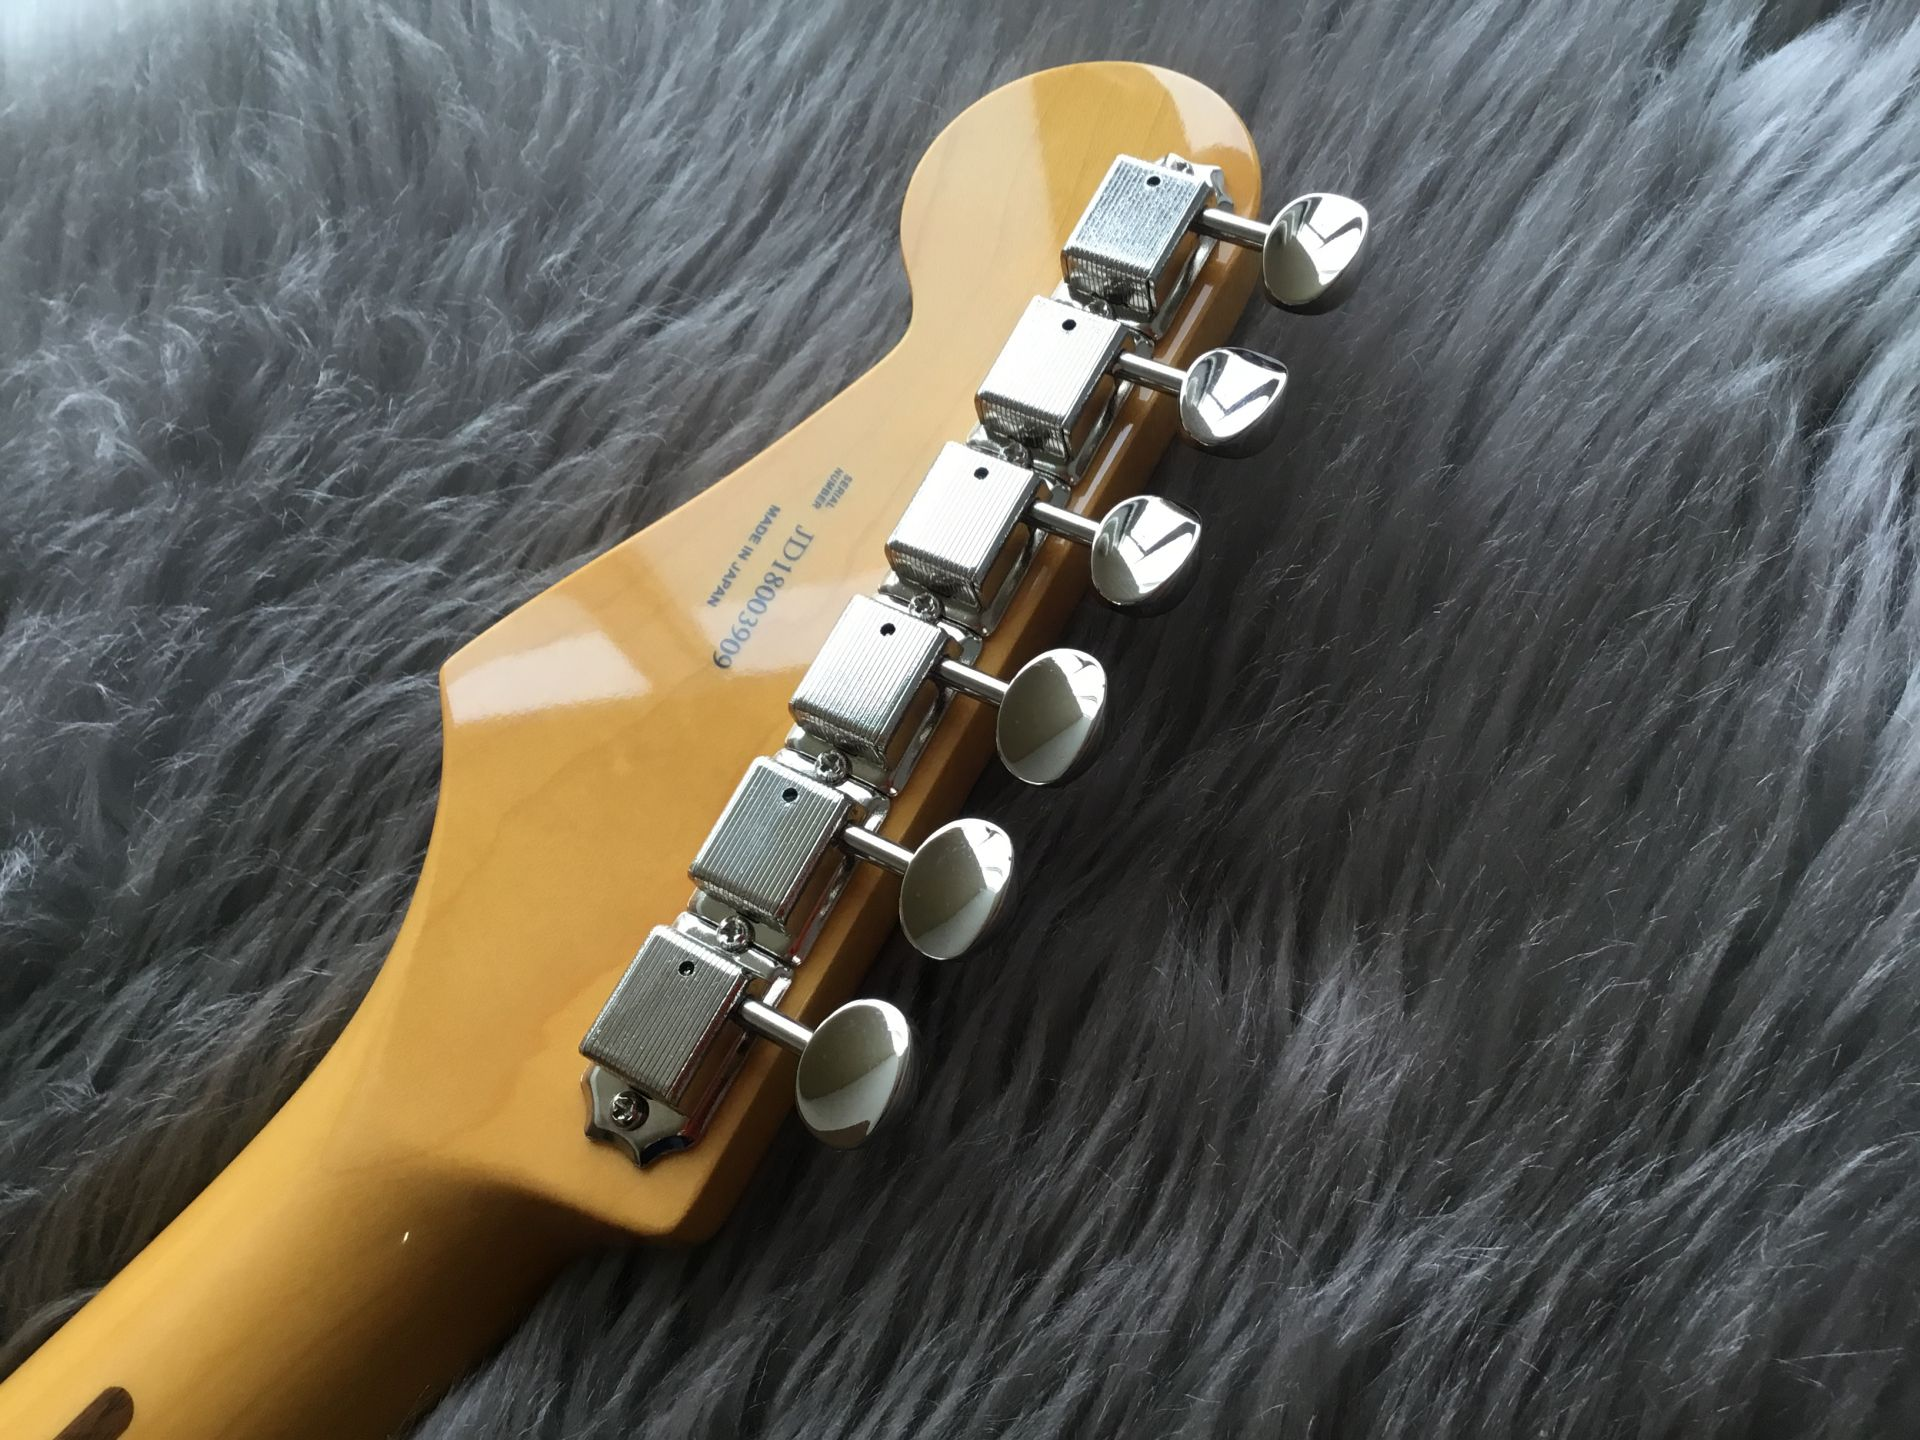 Fender Made in Japan Traditional 58 Stratocasterのヘッド裏-アップ画像